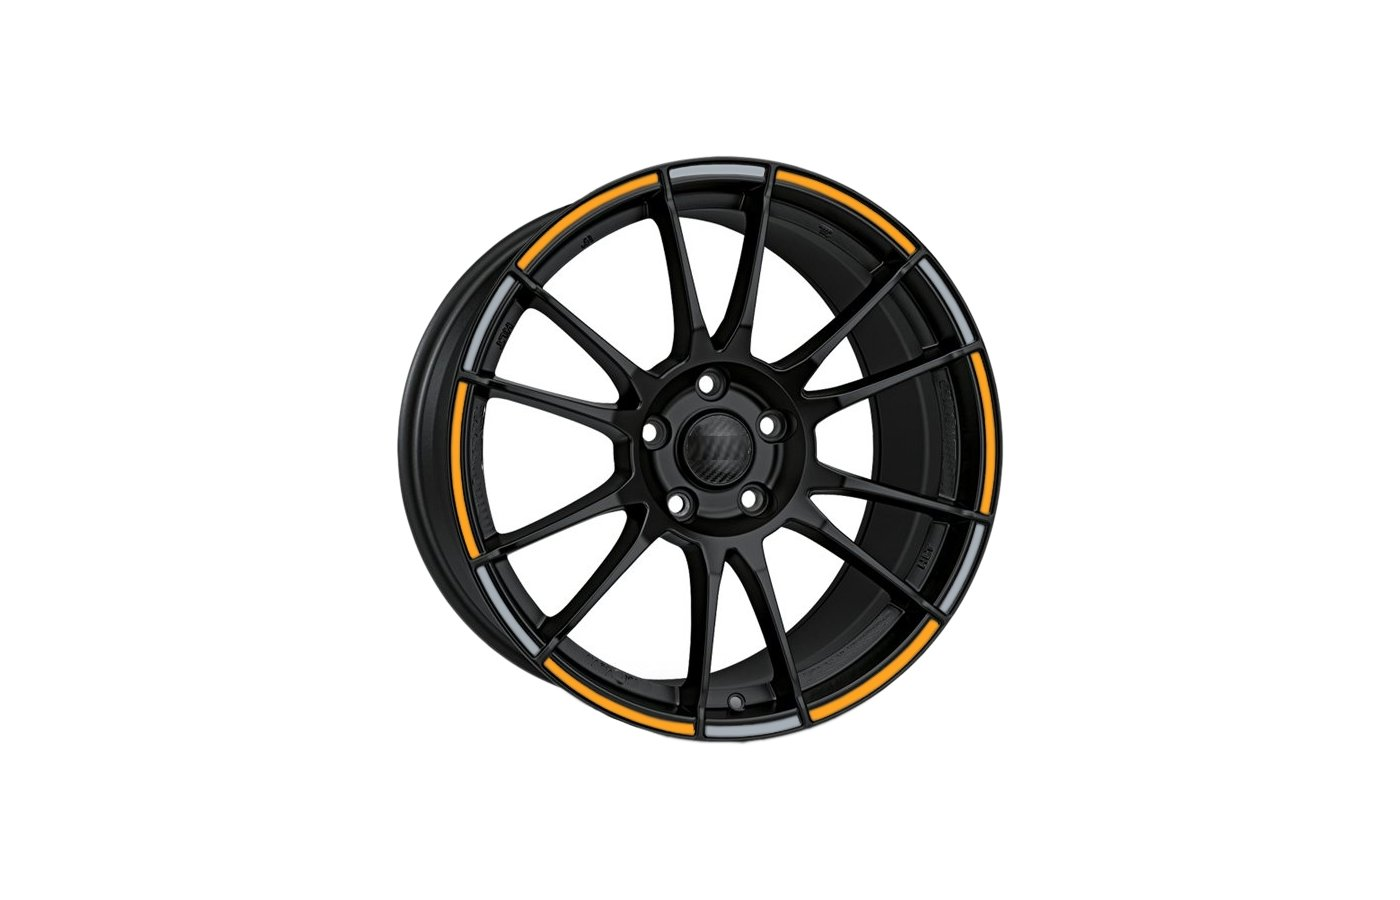 Диск NZ SH670 5.5x14/4x98 D58.6 ET35 MBOGS